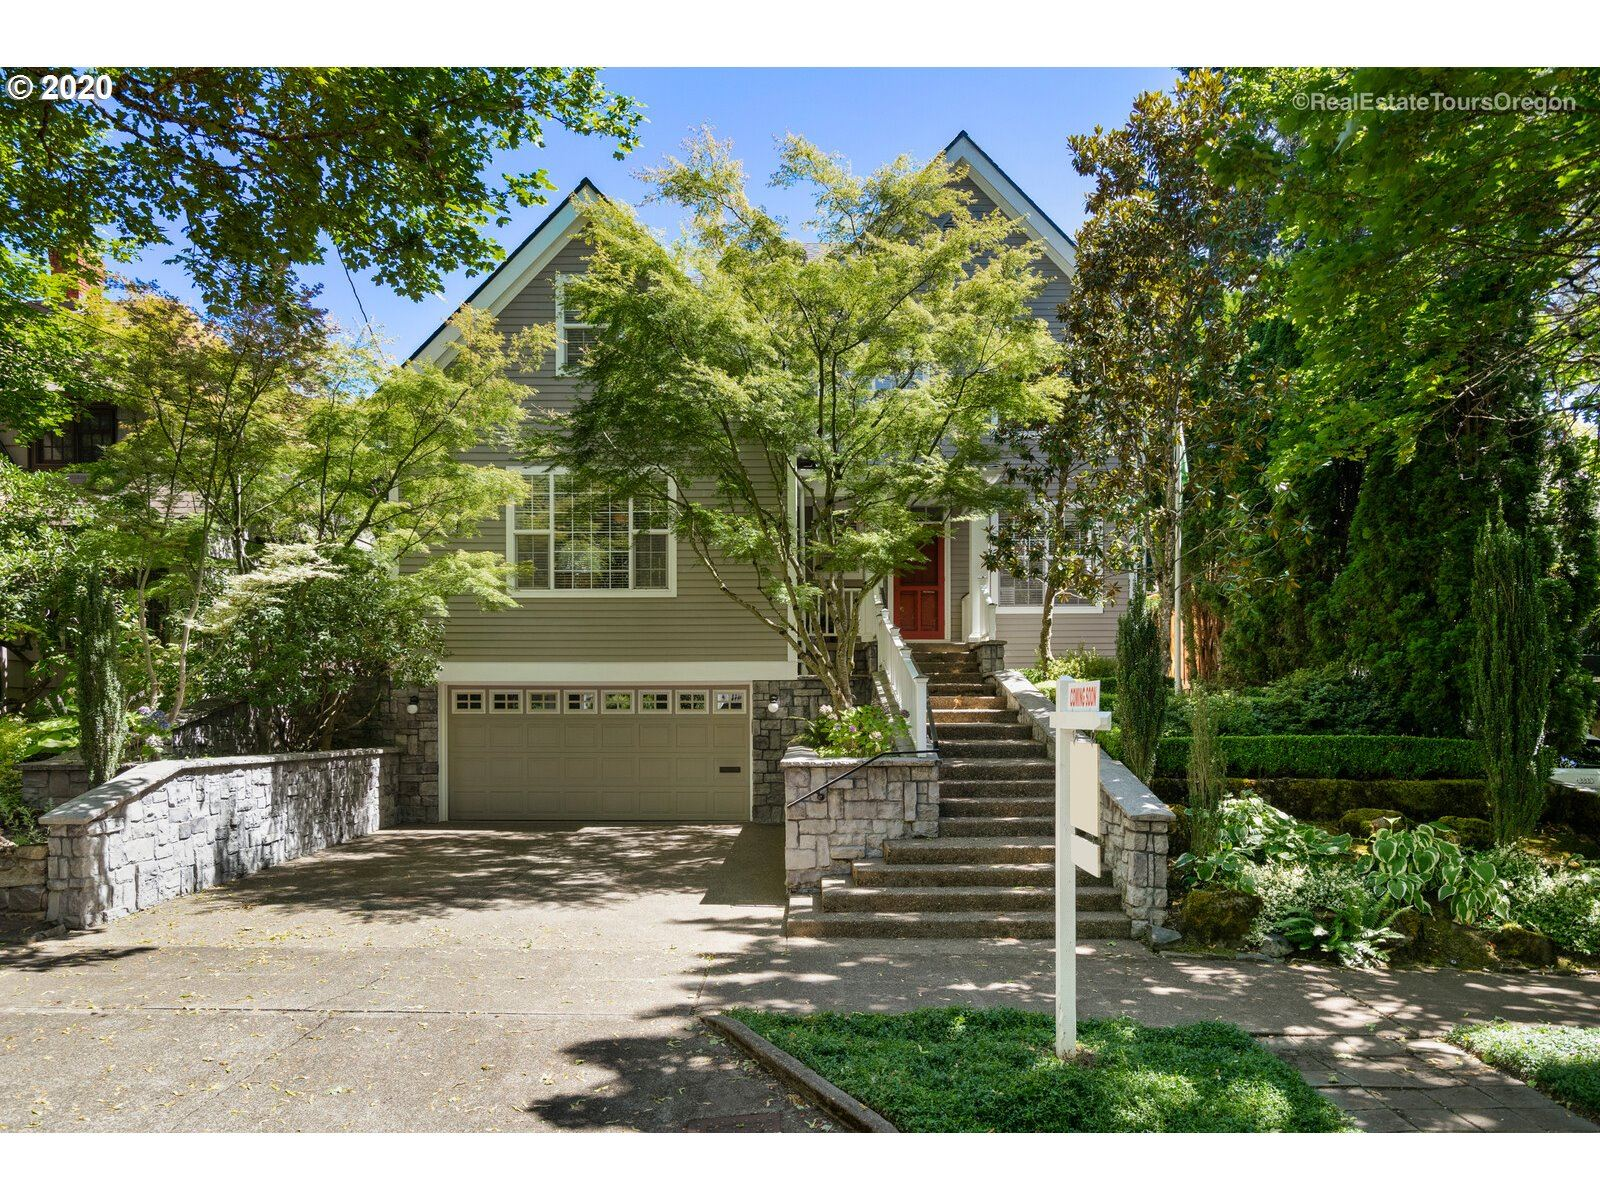 7342 SE 35TH AVE, Portland, OR 97202 - MLS#: 20033316